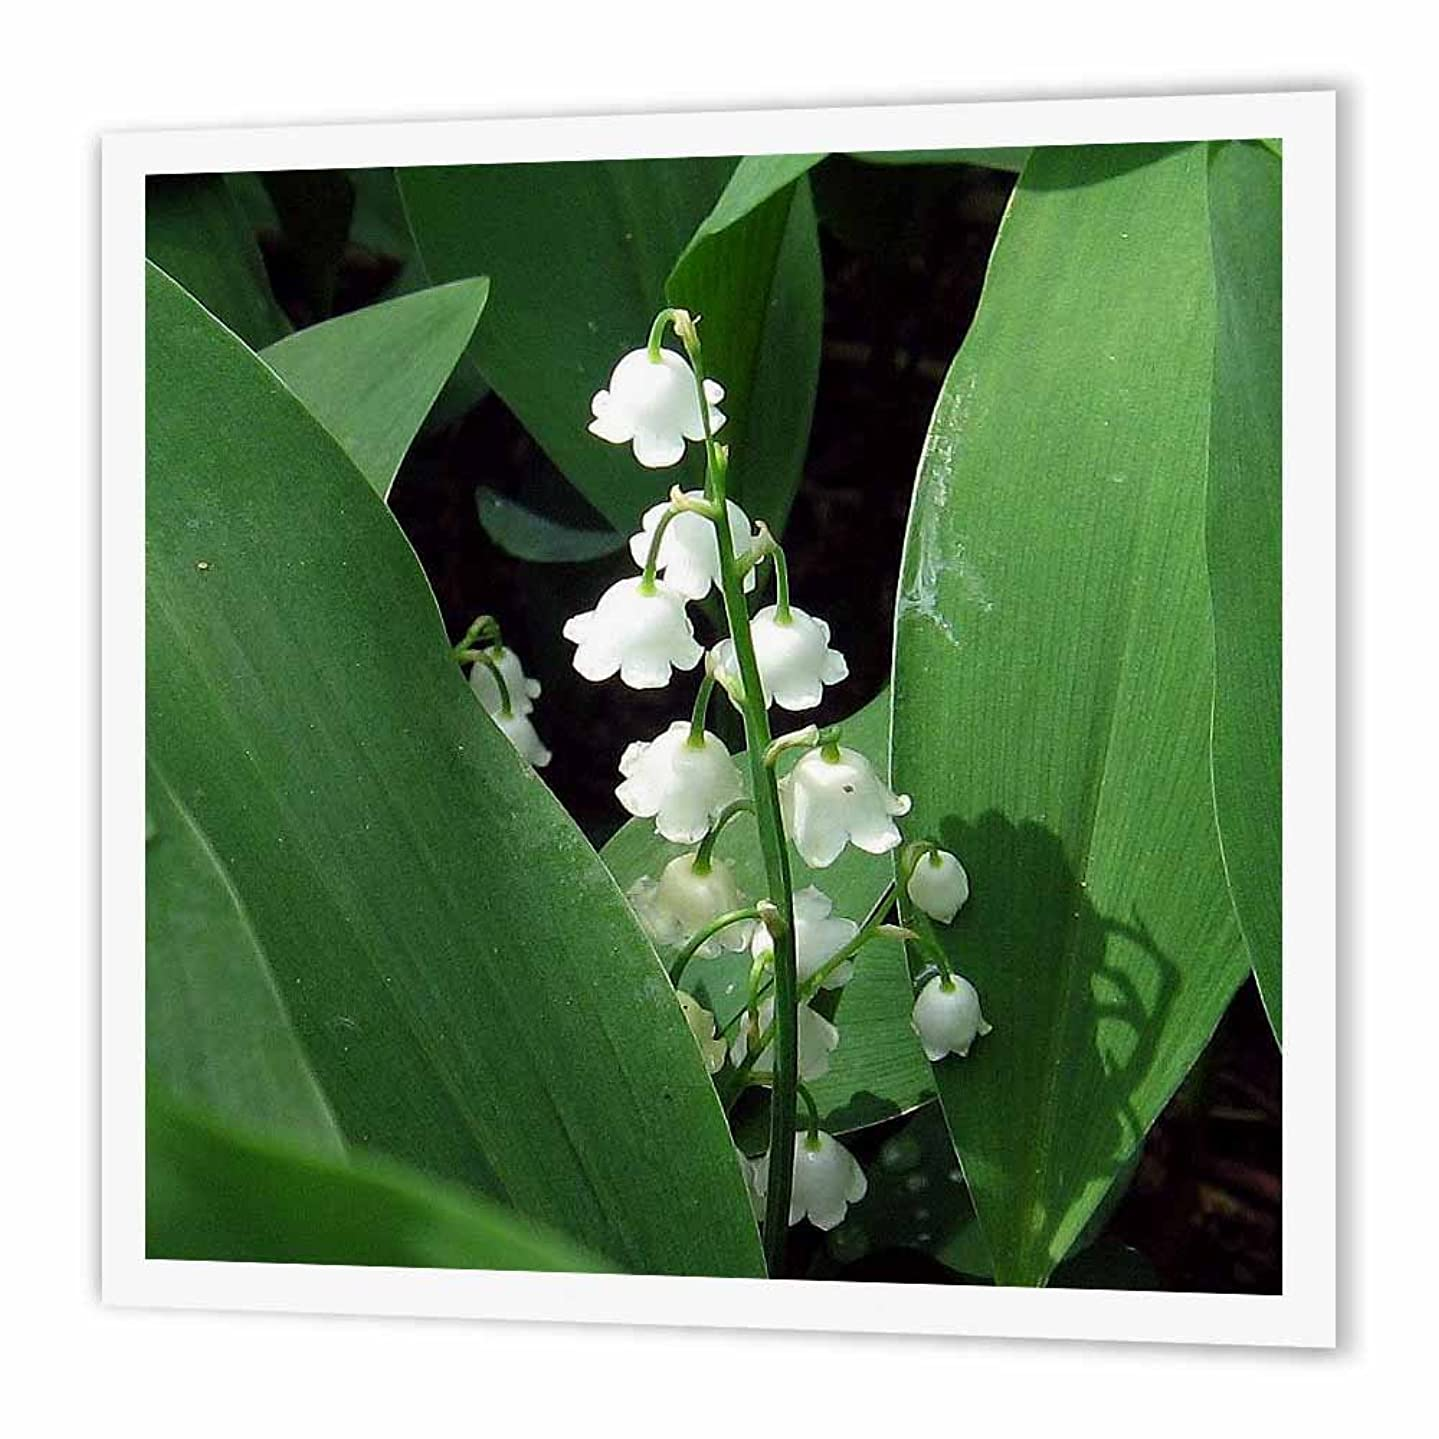 3dRose ht_158130_2 Lily of The Valley-Iron on Heat Transfer Paper for White Material, 6 by 6-Inch